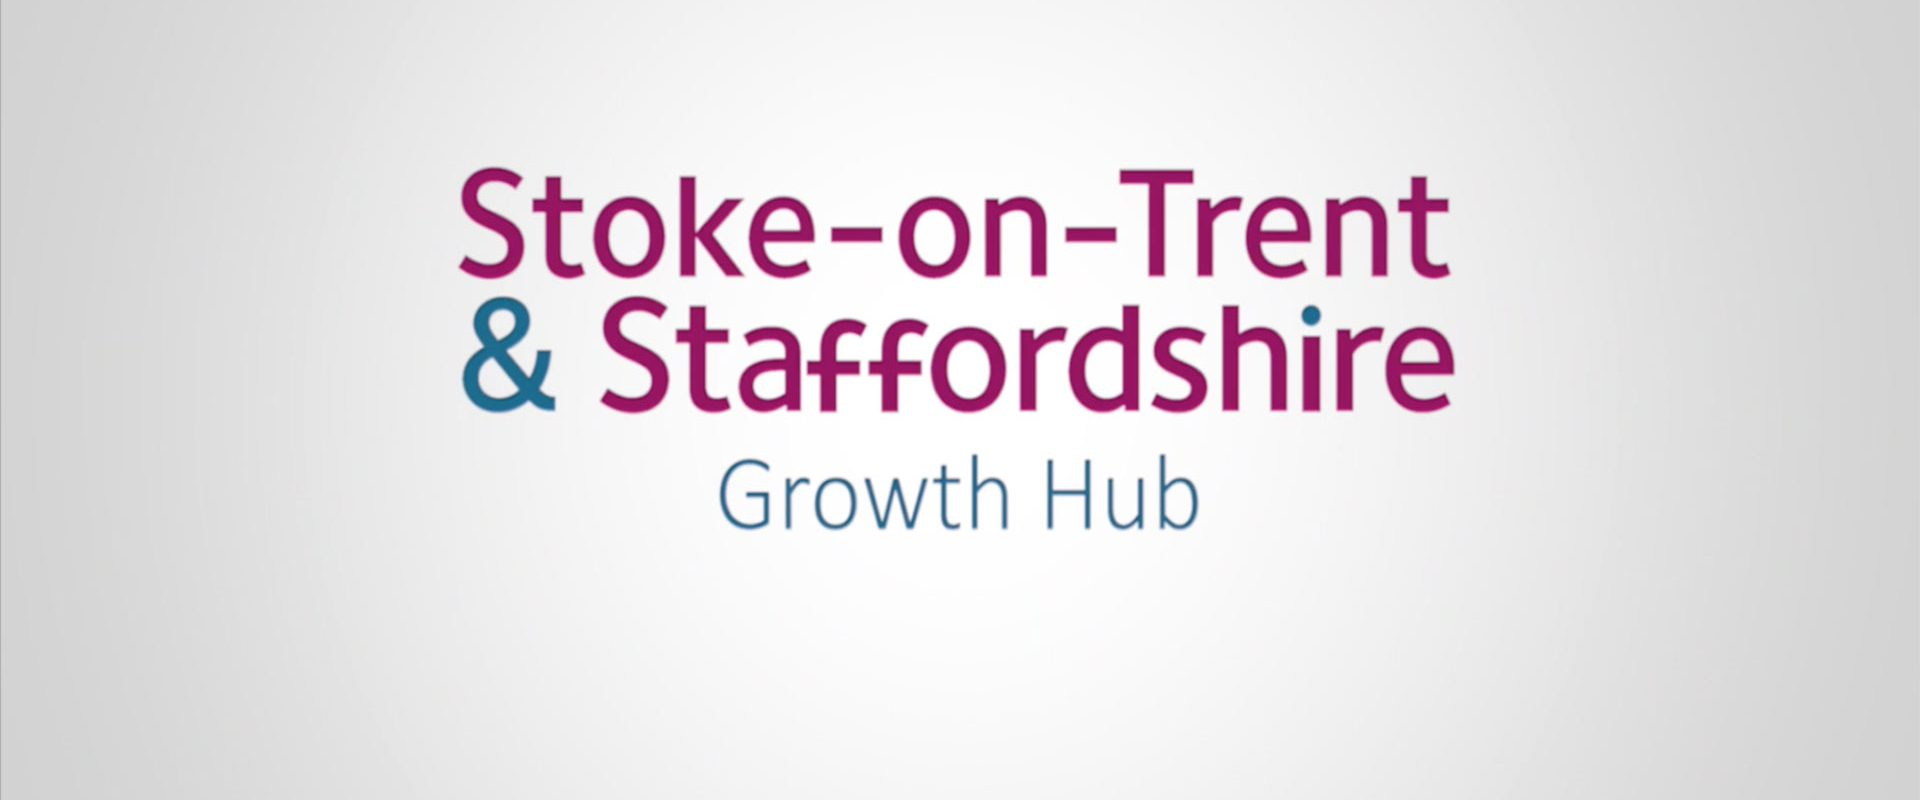 Business Growth Workshop for Stoke & Staffordshire Businesses